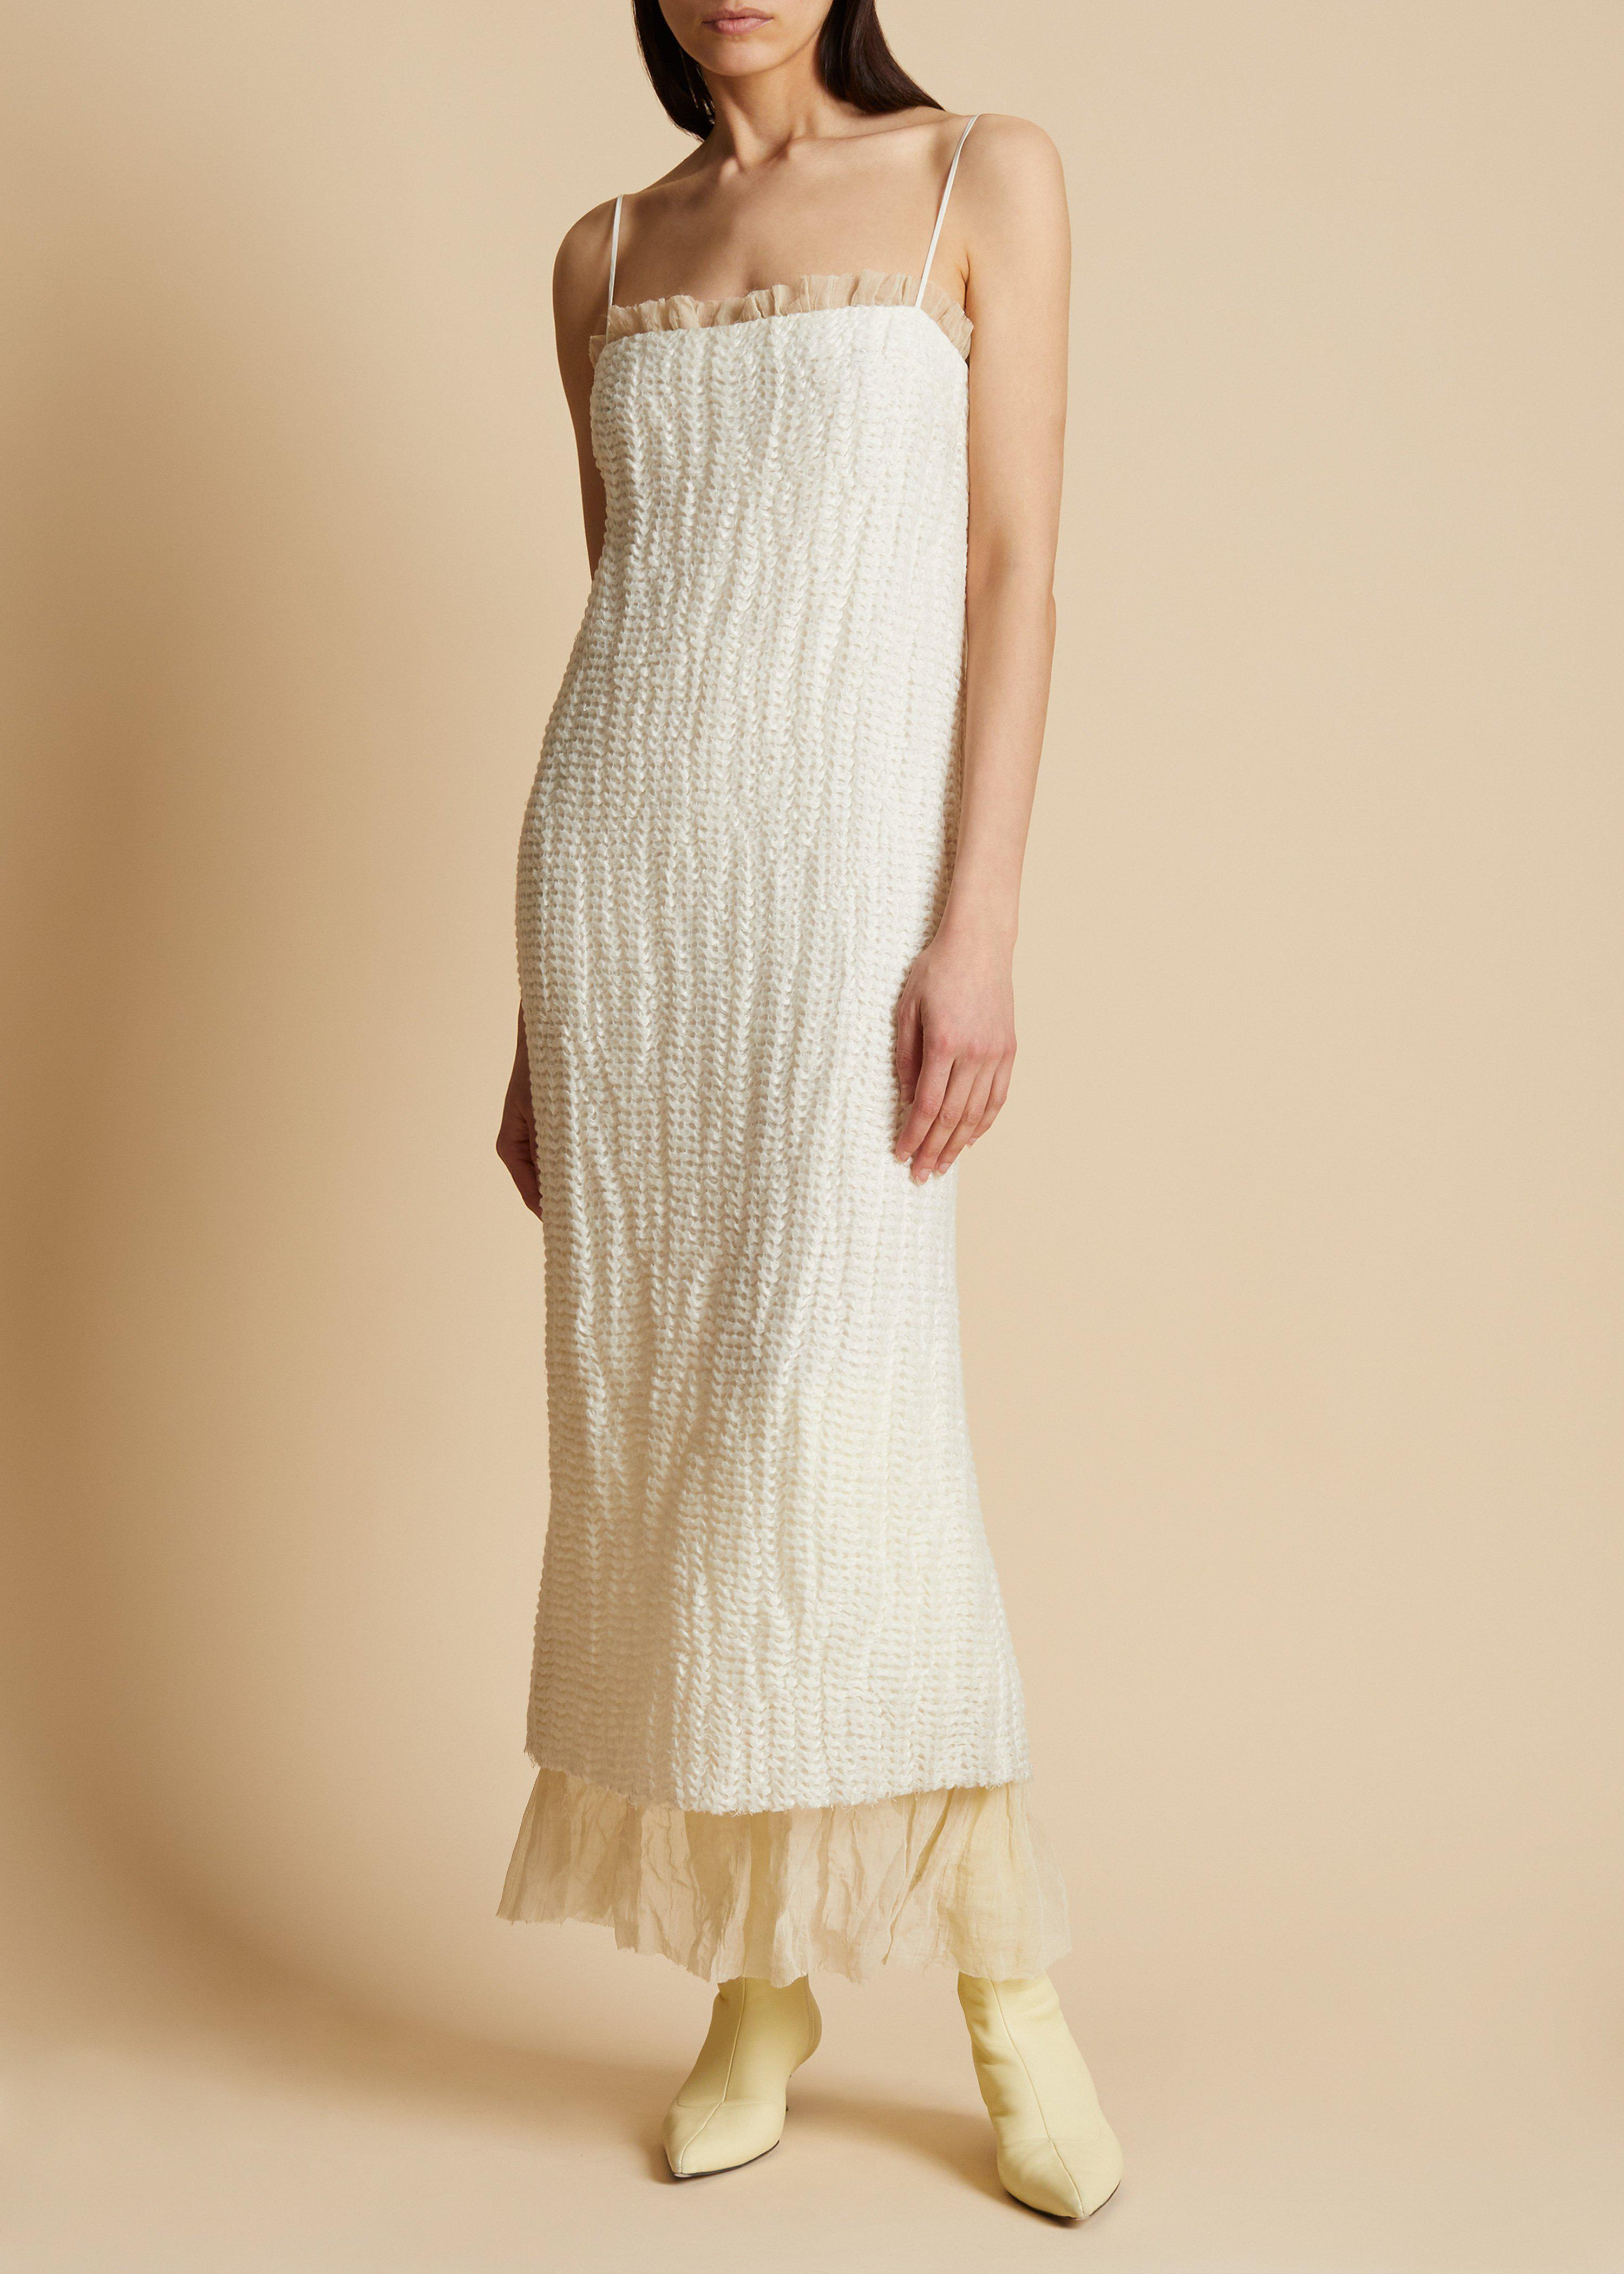 The Susanna Dress in Ivory